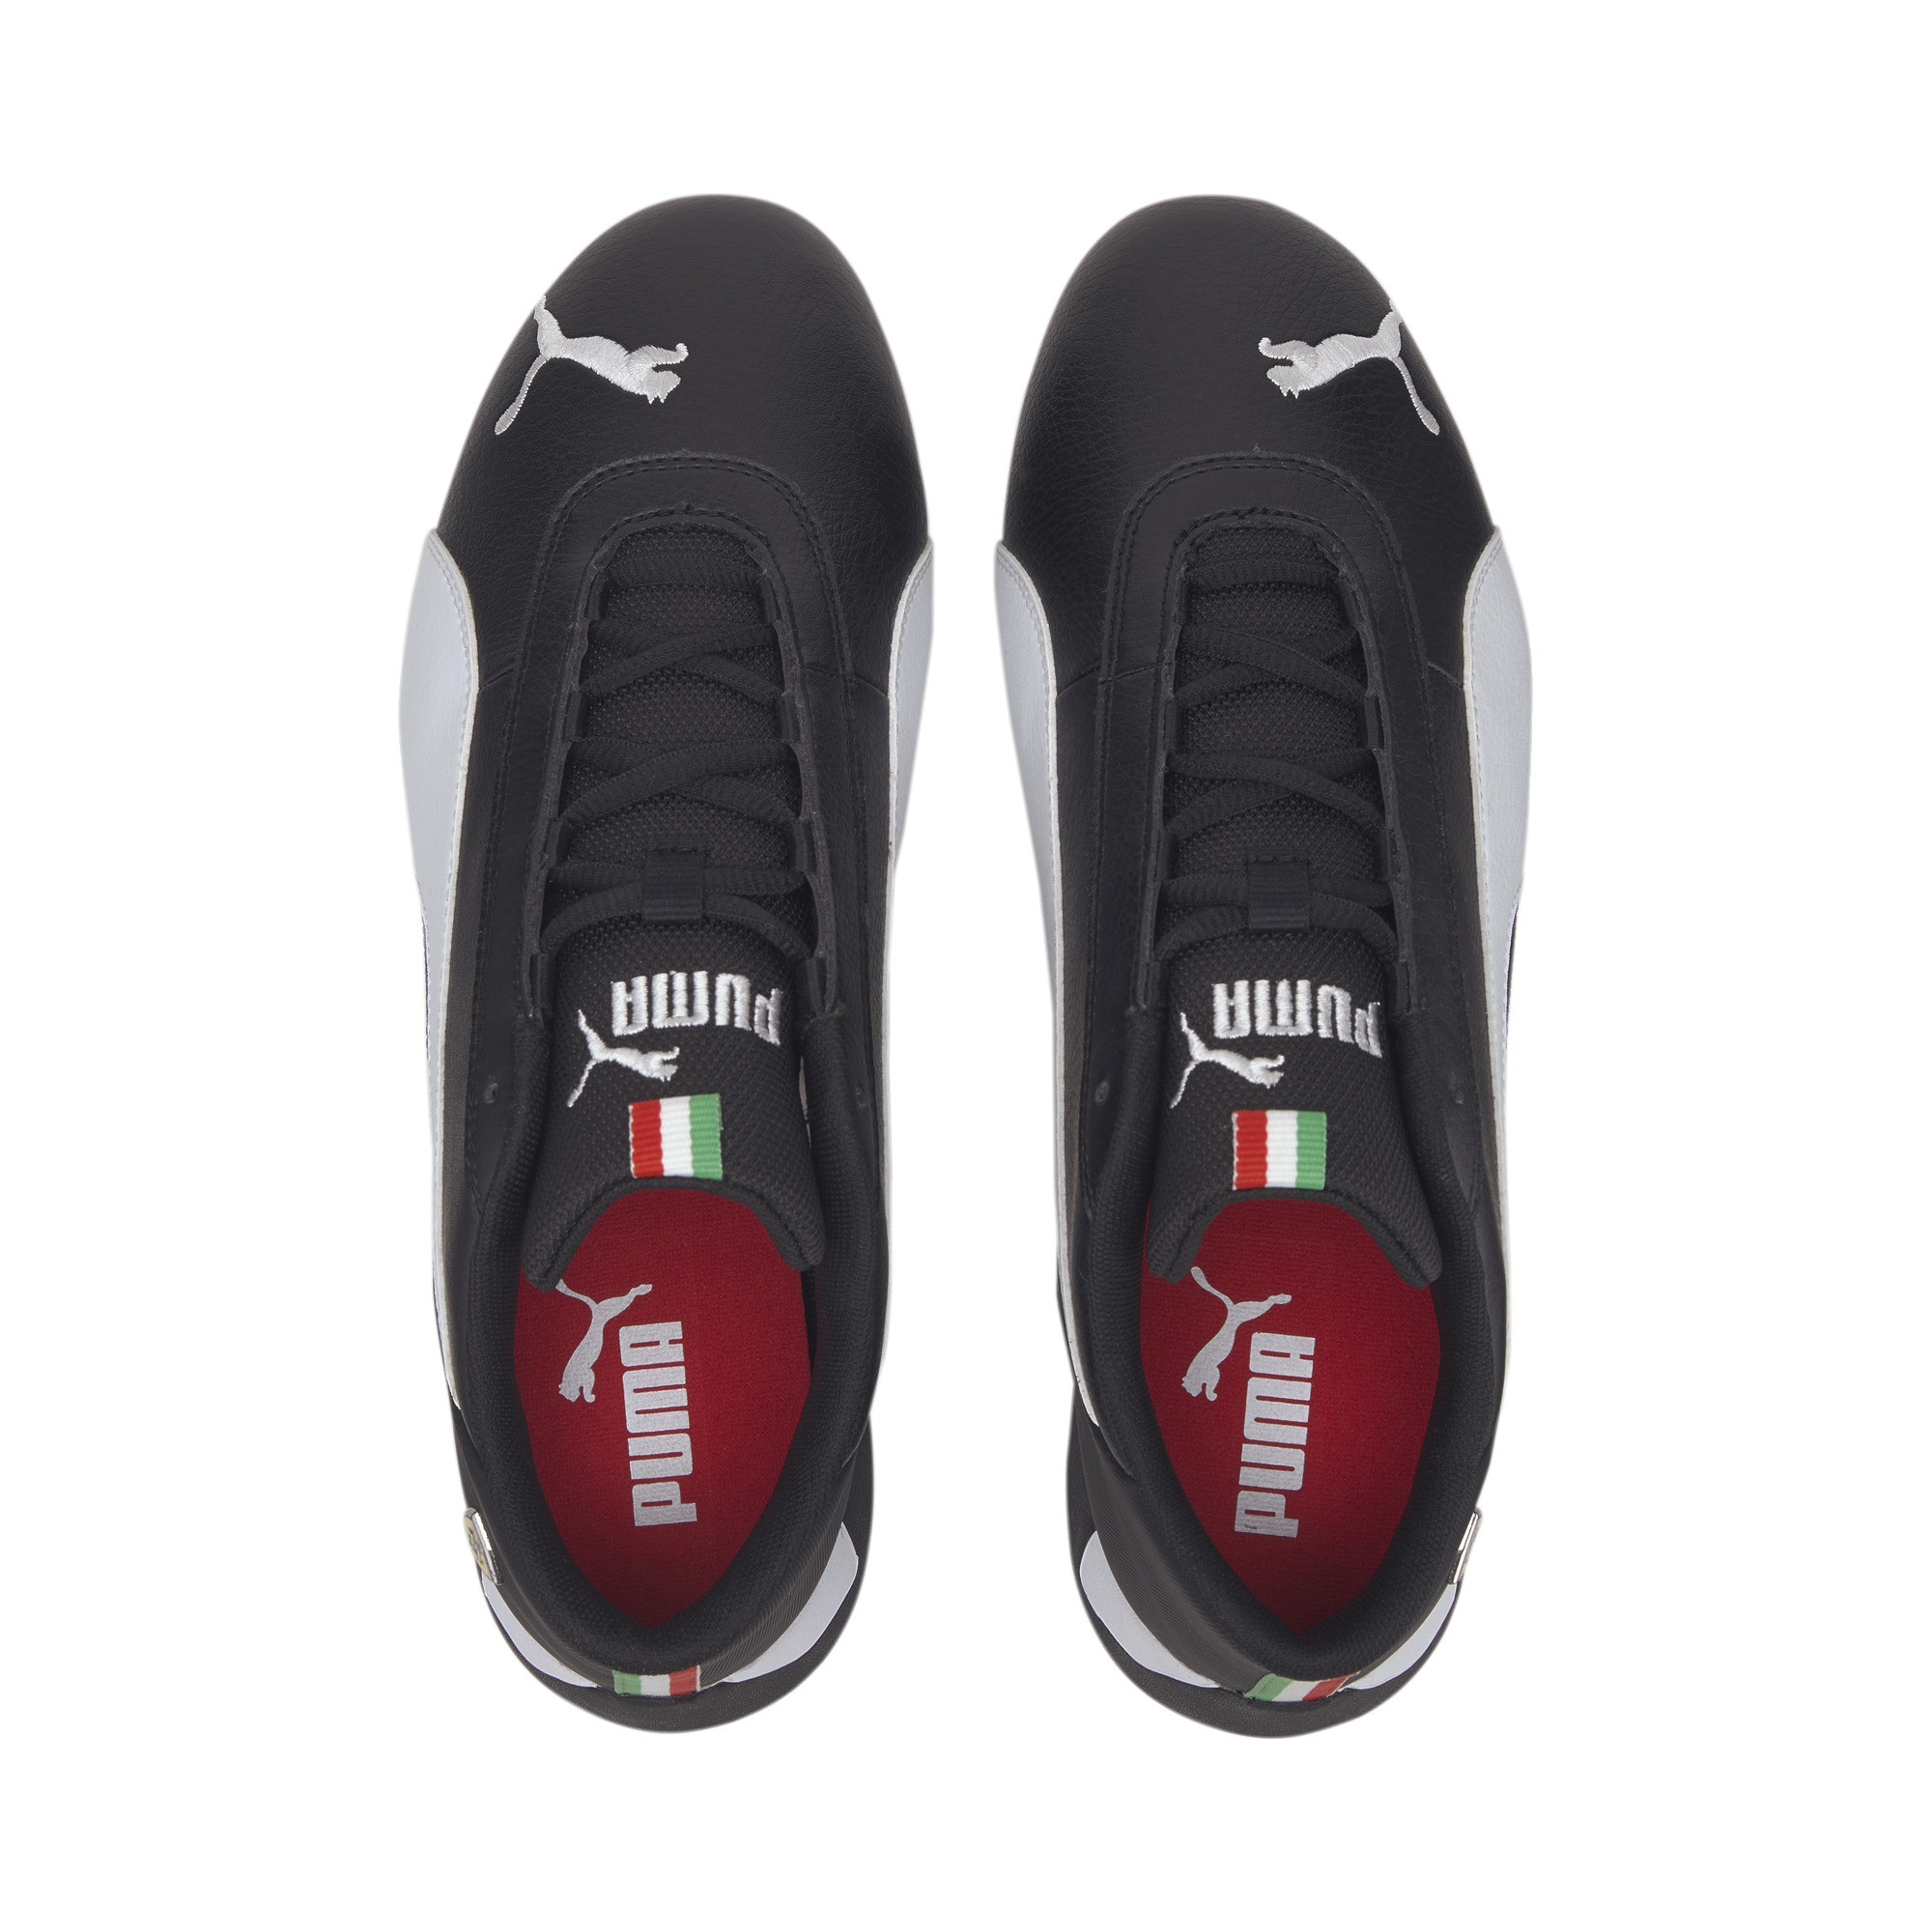 PUMA-Men-039-s-Scuderia-Ferrari-R-Cat-Motorsport-Shoes thumbnail 16